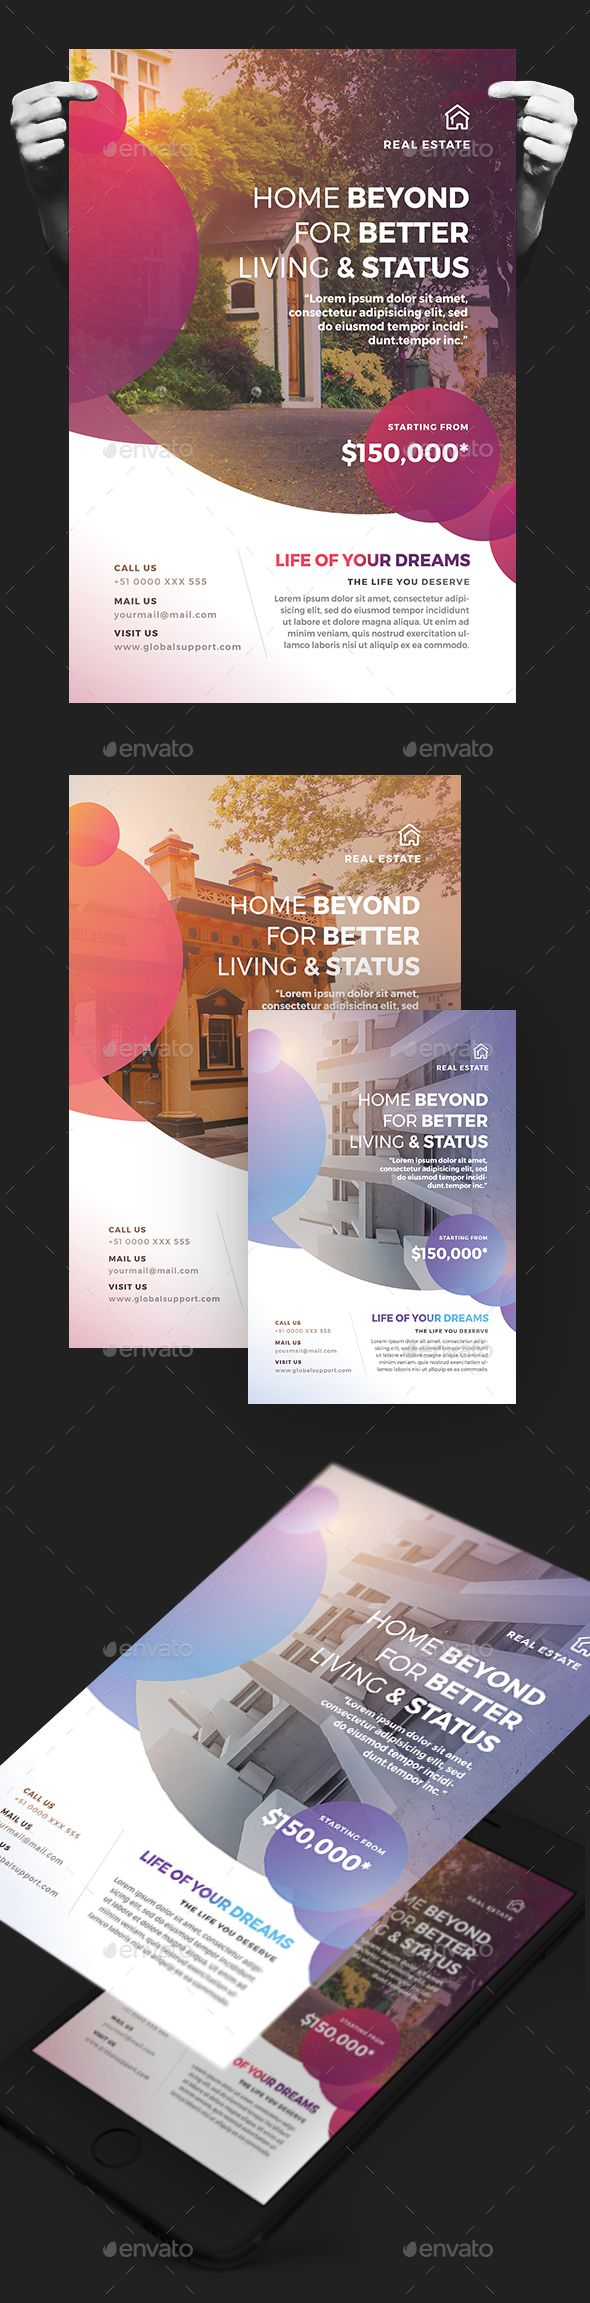 Creative Colorful Real Estate Flyer — Photoshop PSD #magazine ad #realtor • Download ➝ https://graphicriver.net/item/creative-colorful-real-estate-flyer/20080258?ref=pxcr